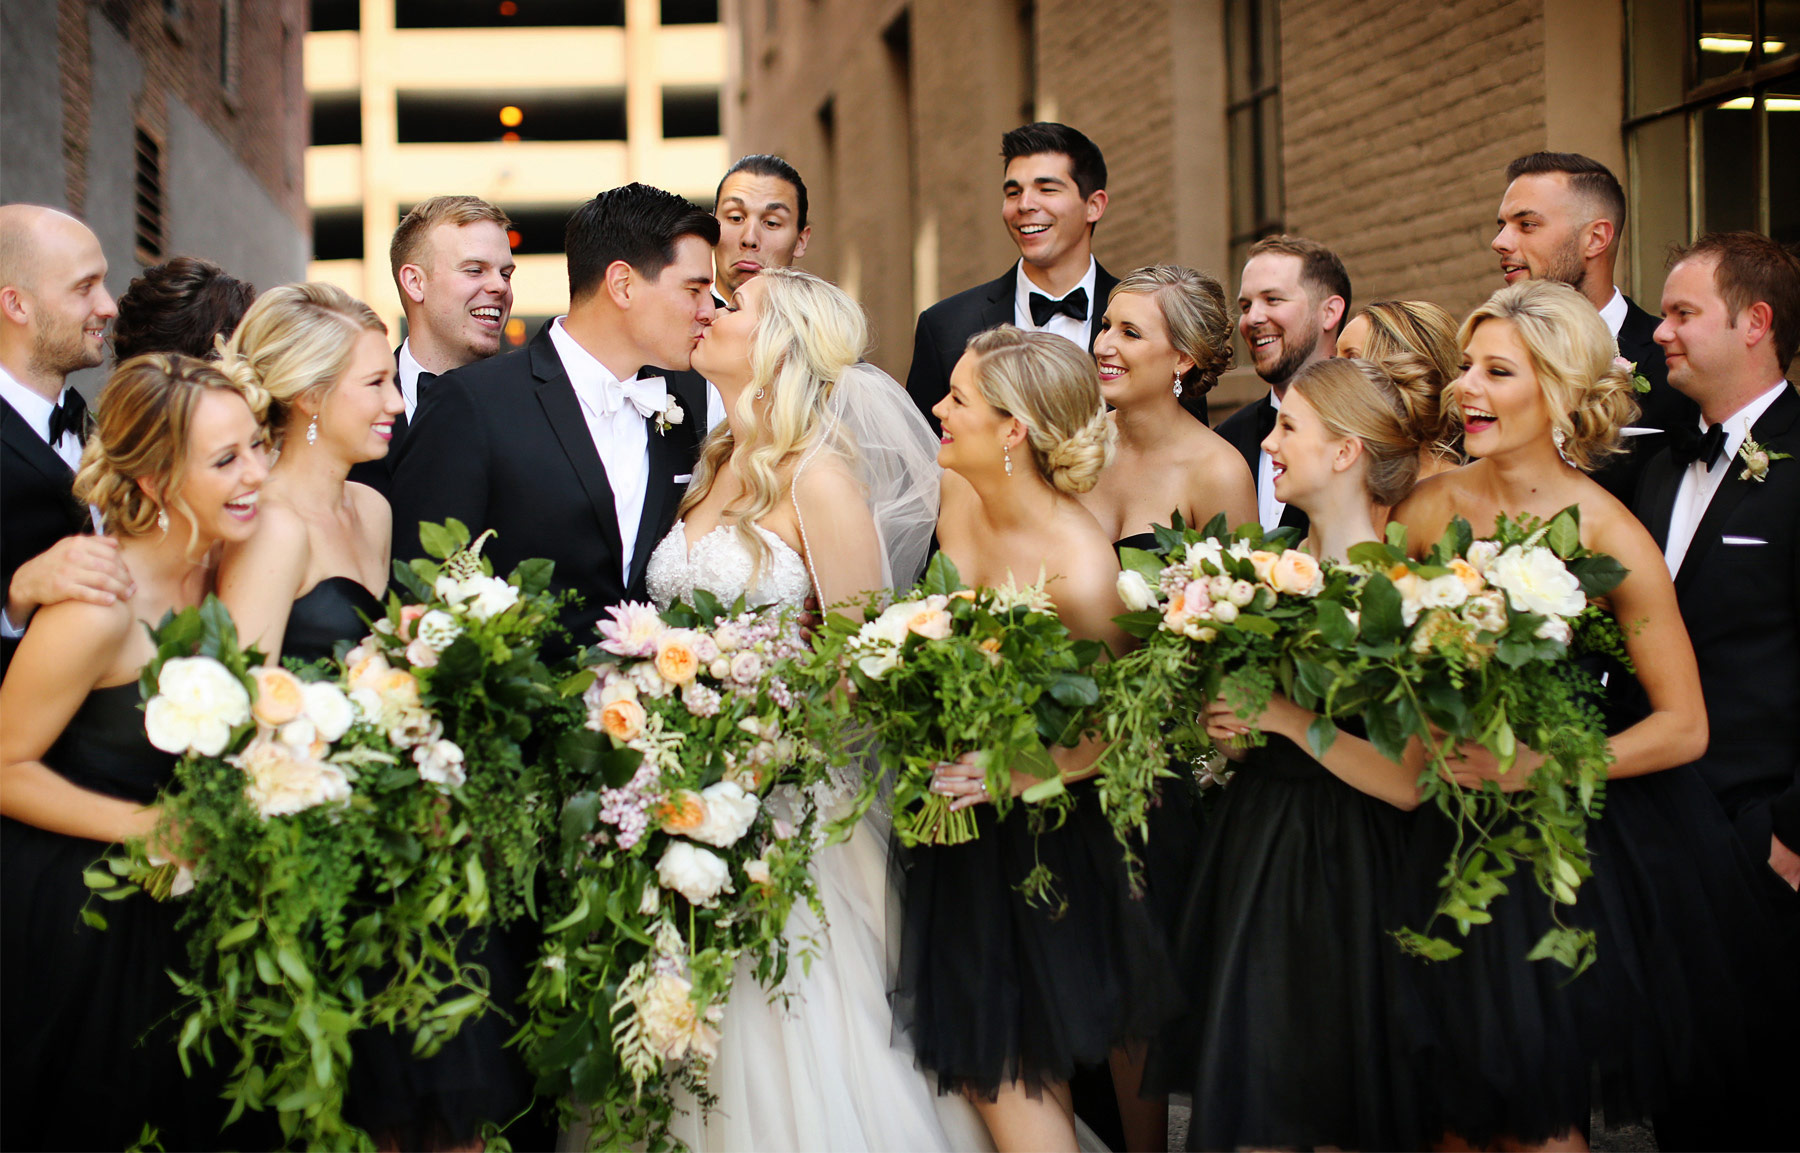 07-Minneapolis-Minnesota-Wedding-Photography-by-Vick-Photography-Aria-Downtown-Industrial-Wedding-Party-Flowers-Nikki-and-Scott.jpg